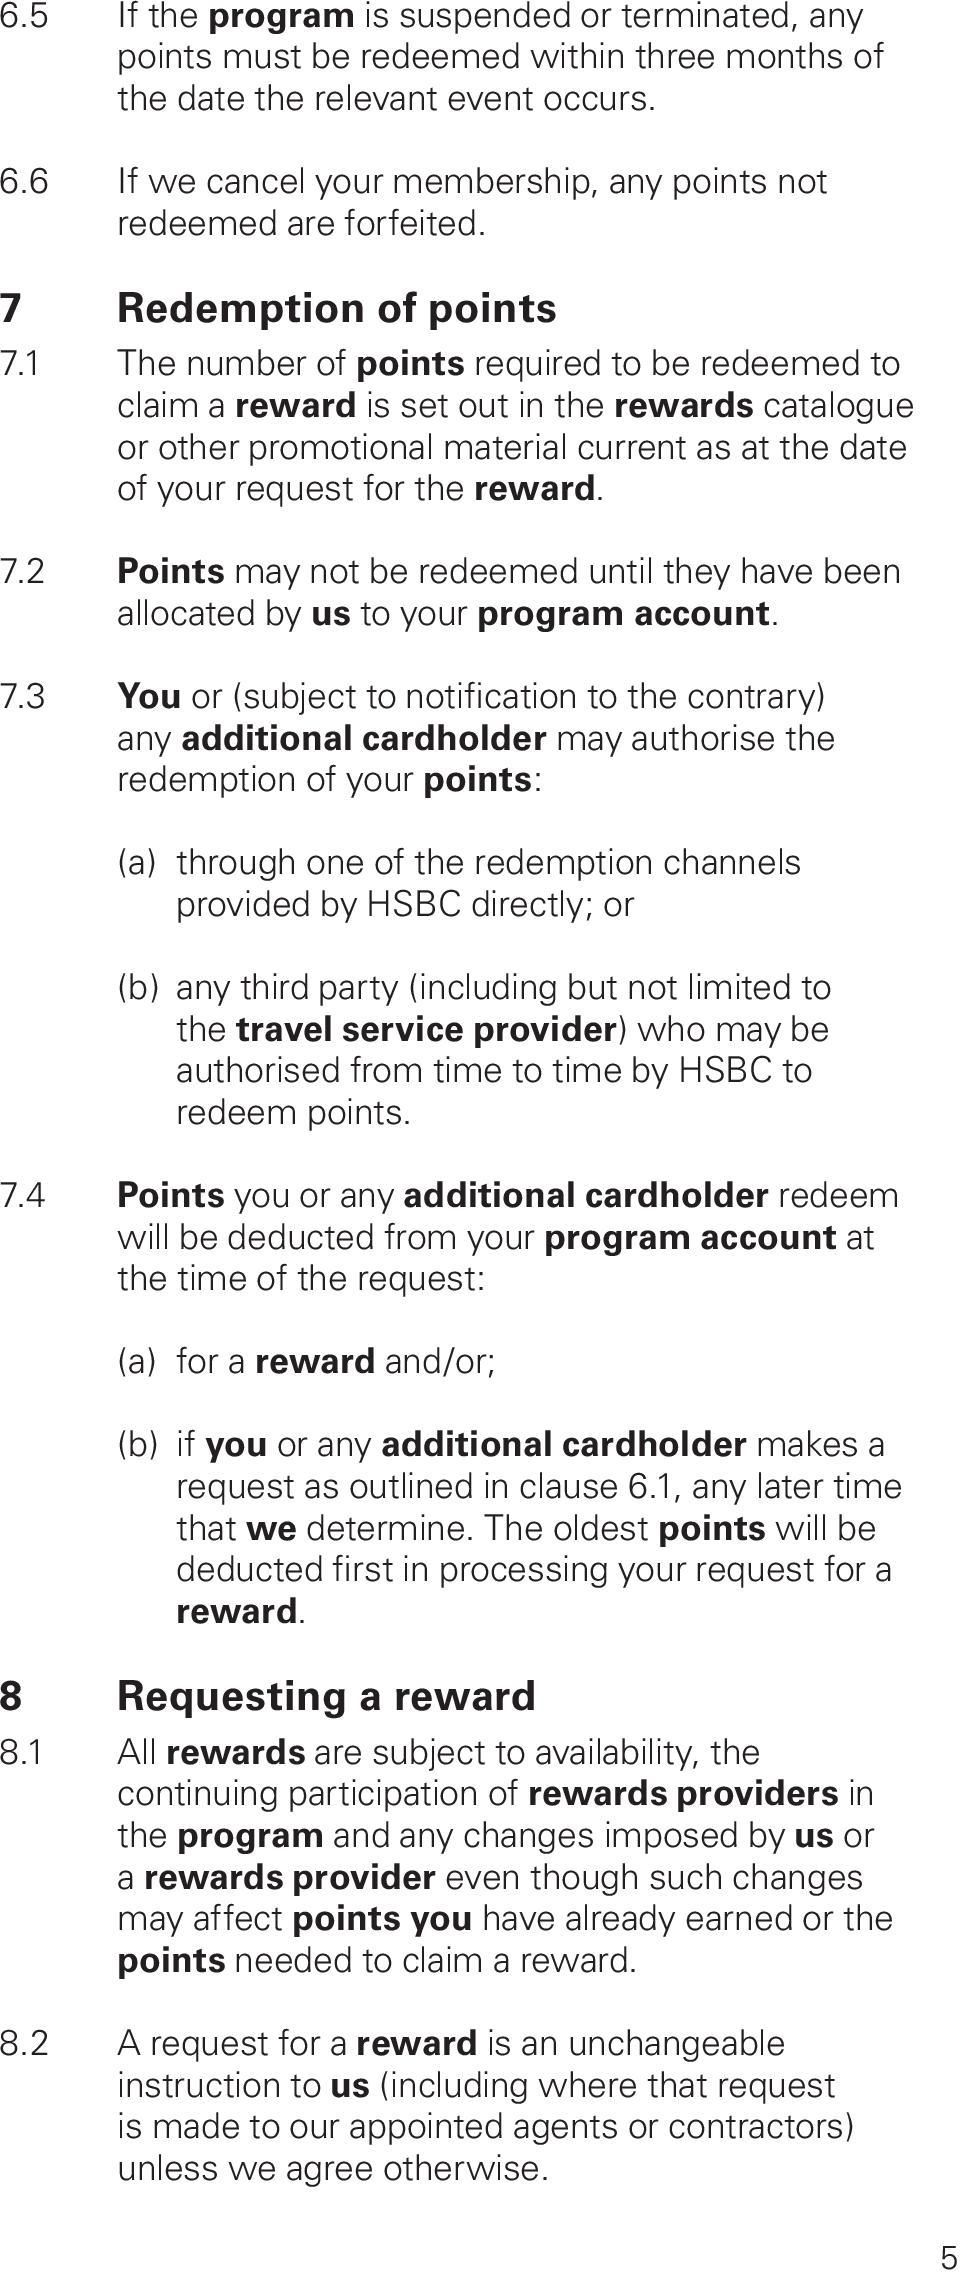 1 The number of points required to be redeemed to claim a reward is set out in the rewards catalogue or other promotional material current as at the date of your request for the reward. 7.